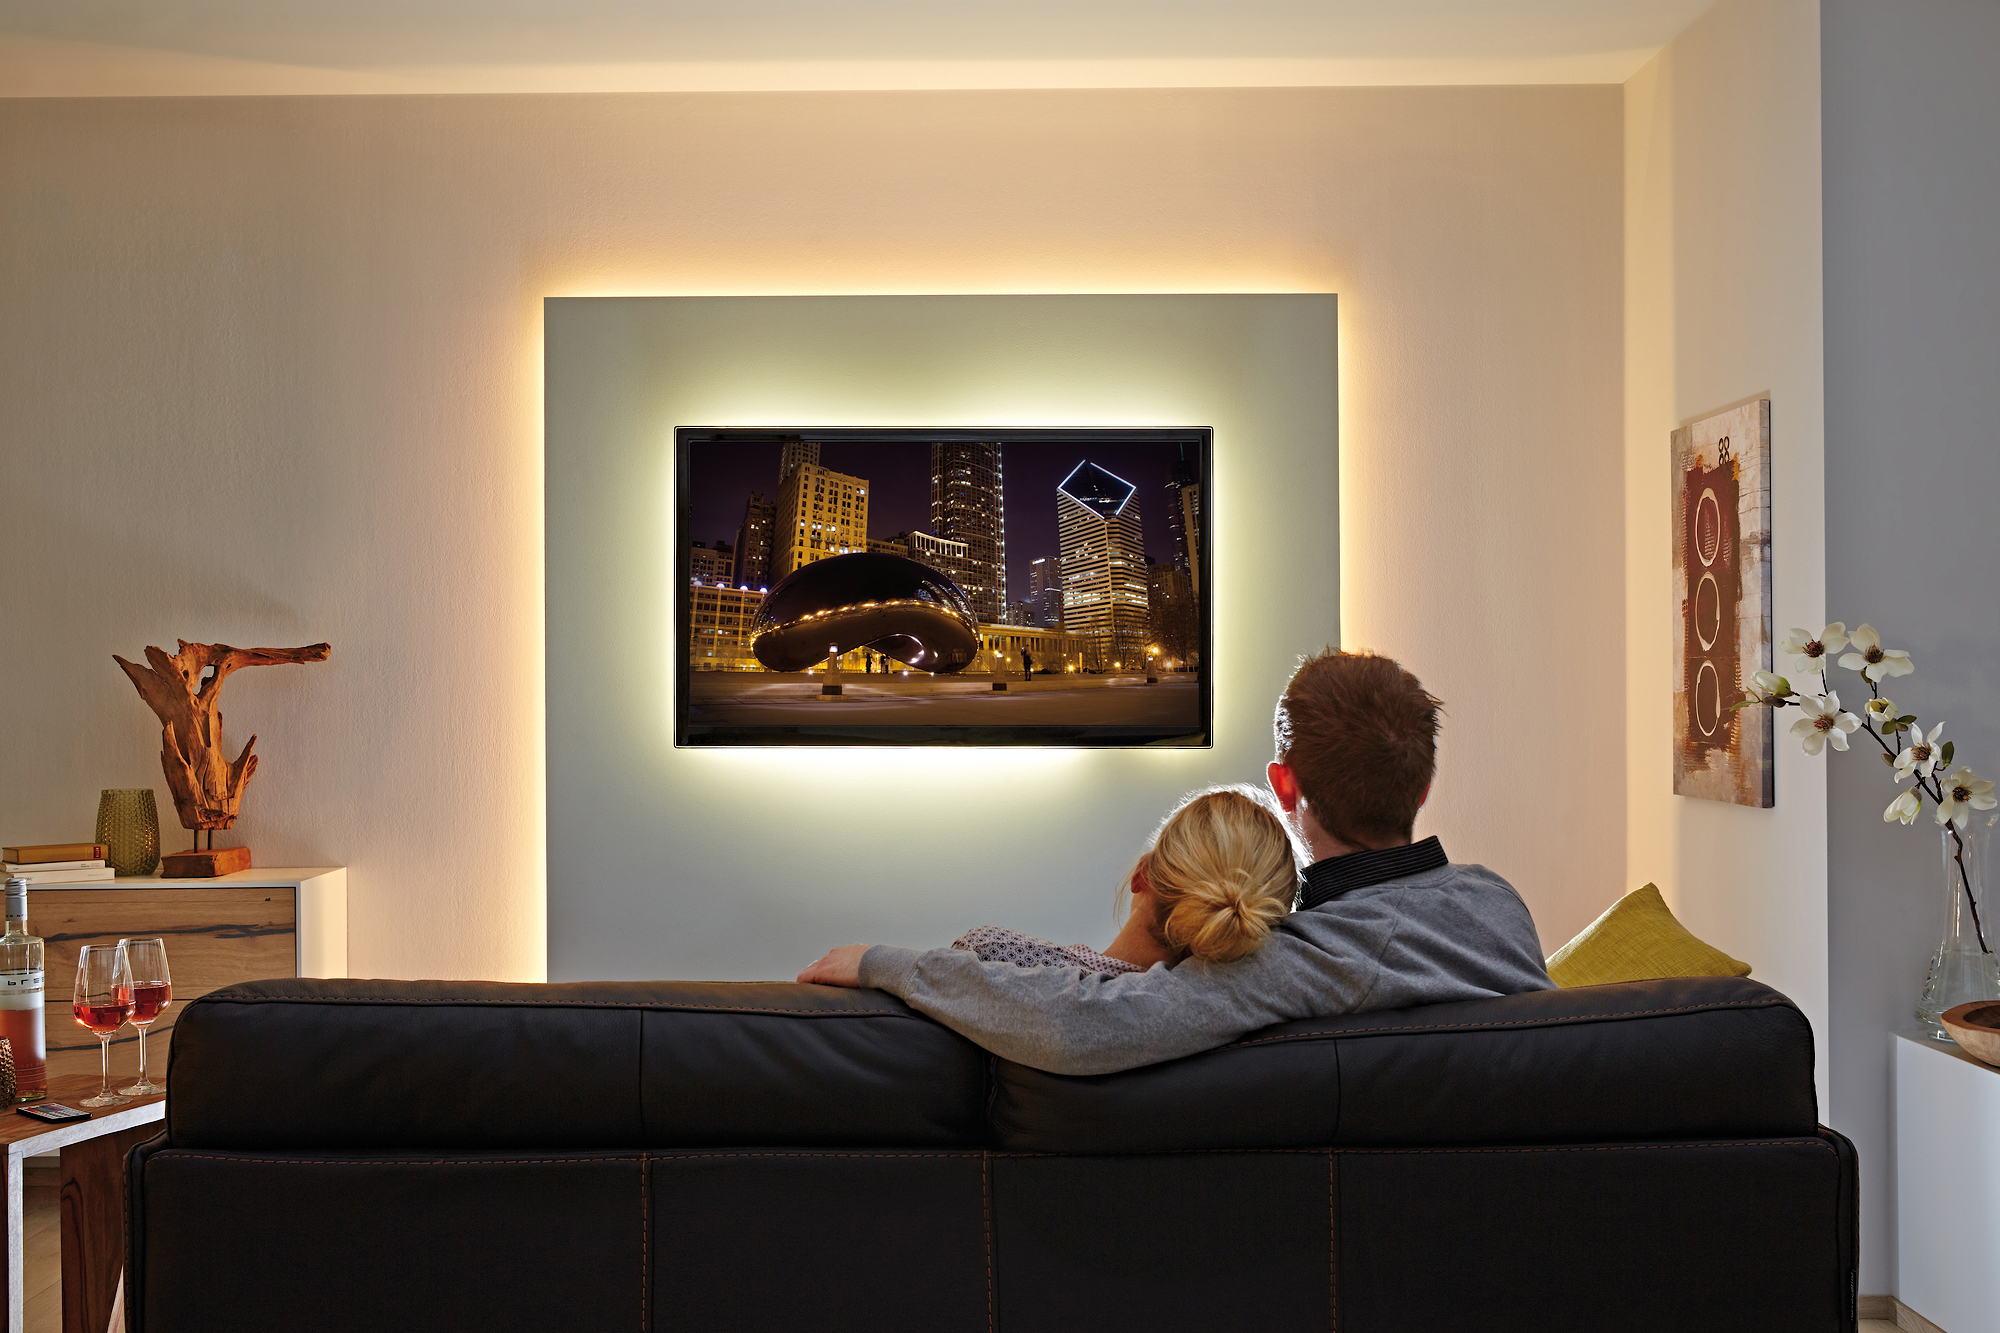 Full Size of Led Beleuchtung Wohnzimmer Tipps Beleuchtung Wohnzimmer Led Spots Led Beleuchtung Wohnzimmer Planen Wohnzimmer Mit Led Beleuchtung Wohnzimmer Led Beleuchtung Wohnzimmer